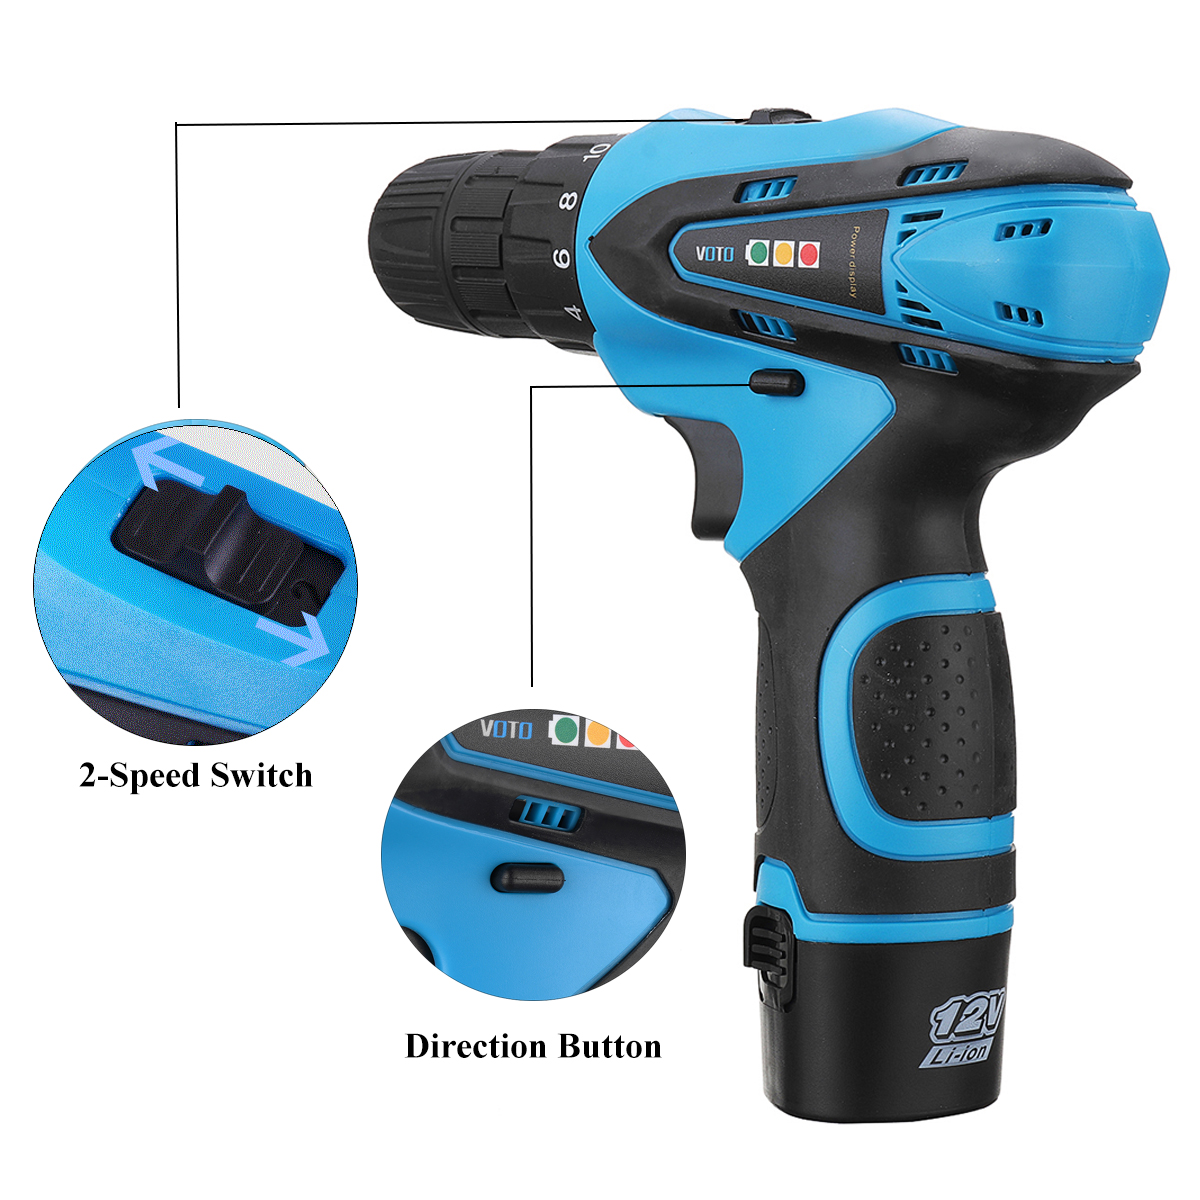 VOTO 12V Cordless Power Drills Driver Screw 2 Speed Lithium-ion Electric Screwdriver with Battery